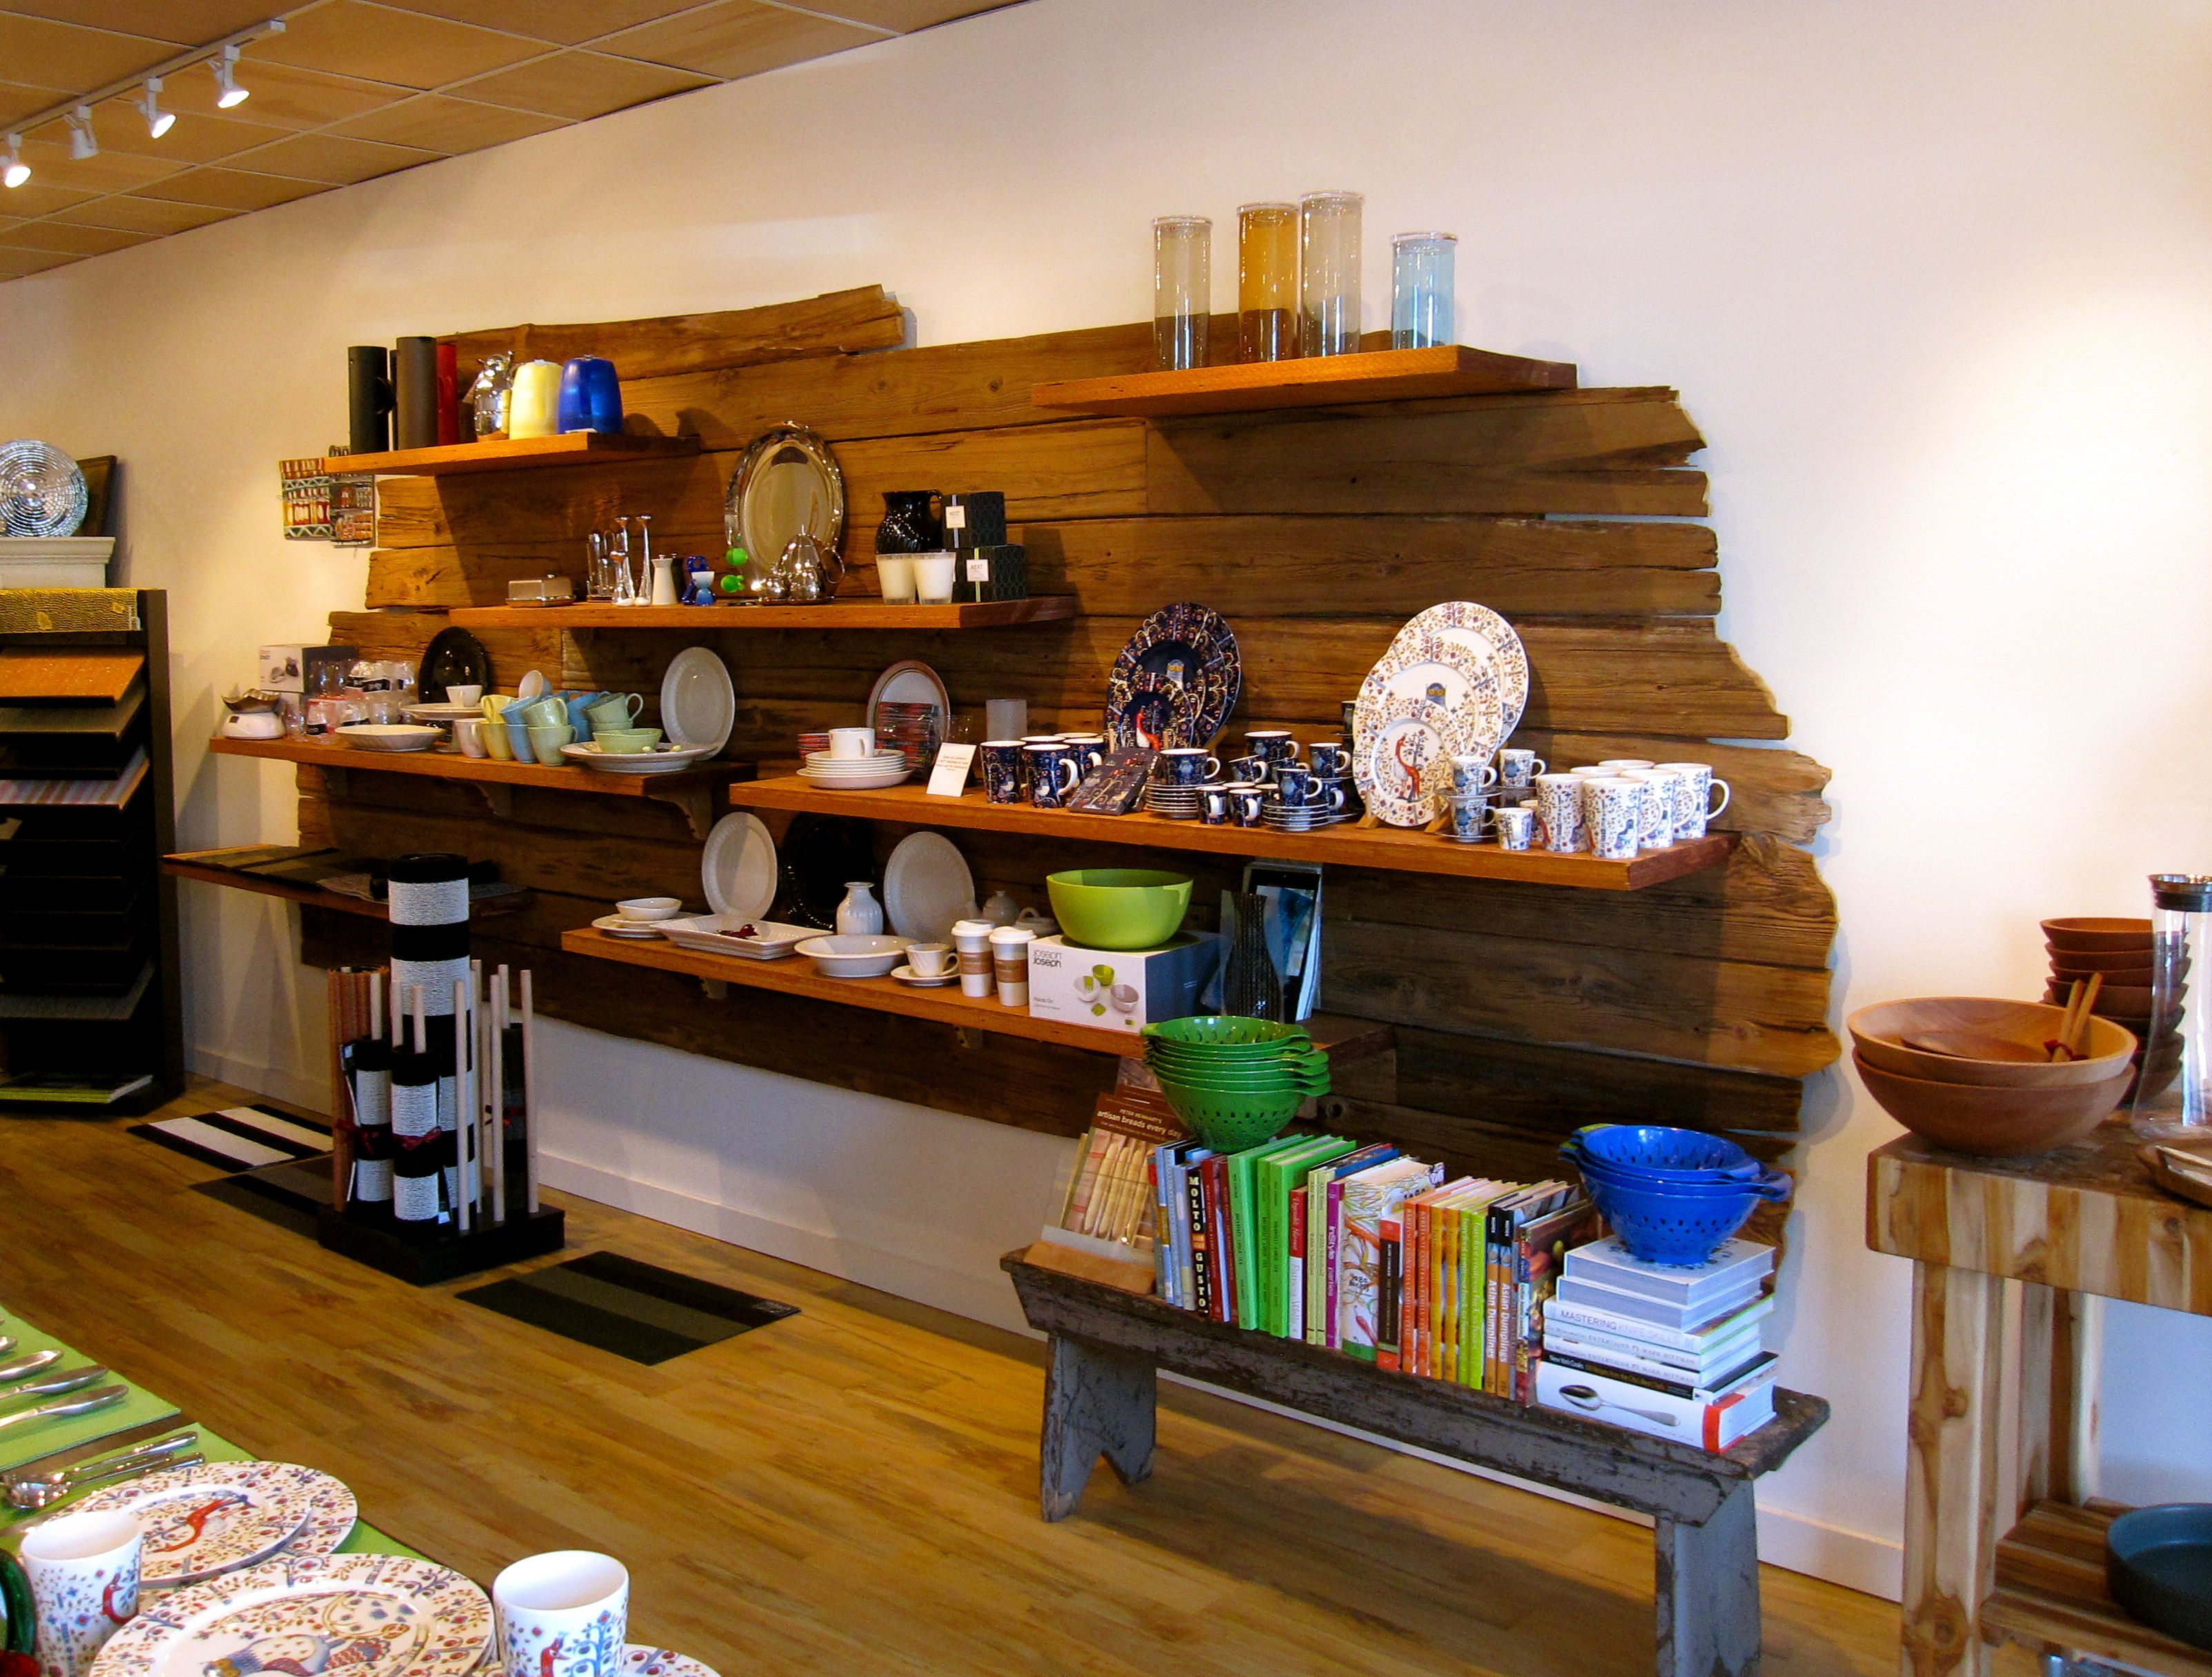 bluecashew kitchen pharmacy, rhinebeck ny | the cayenne room